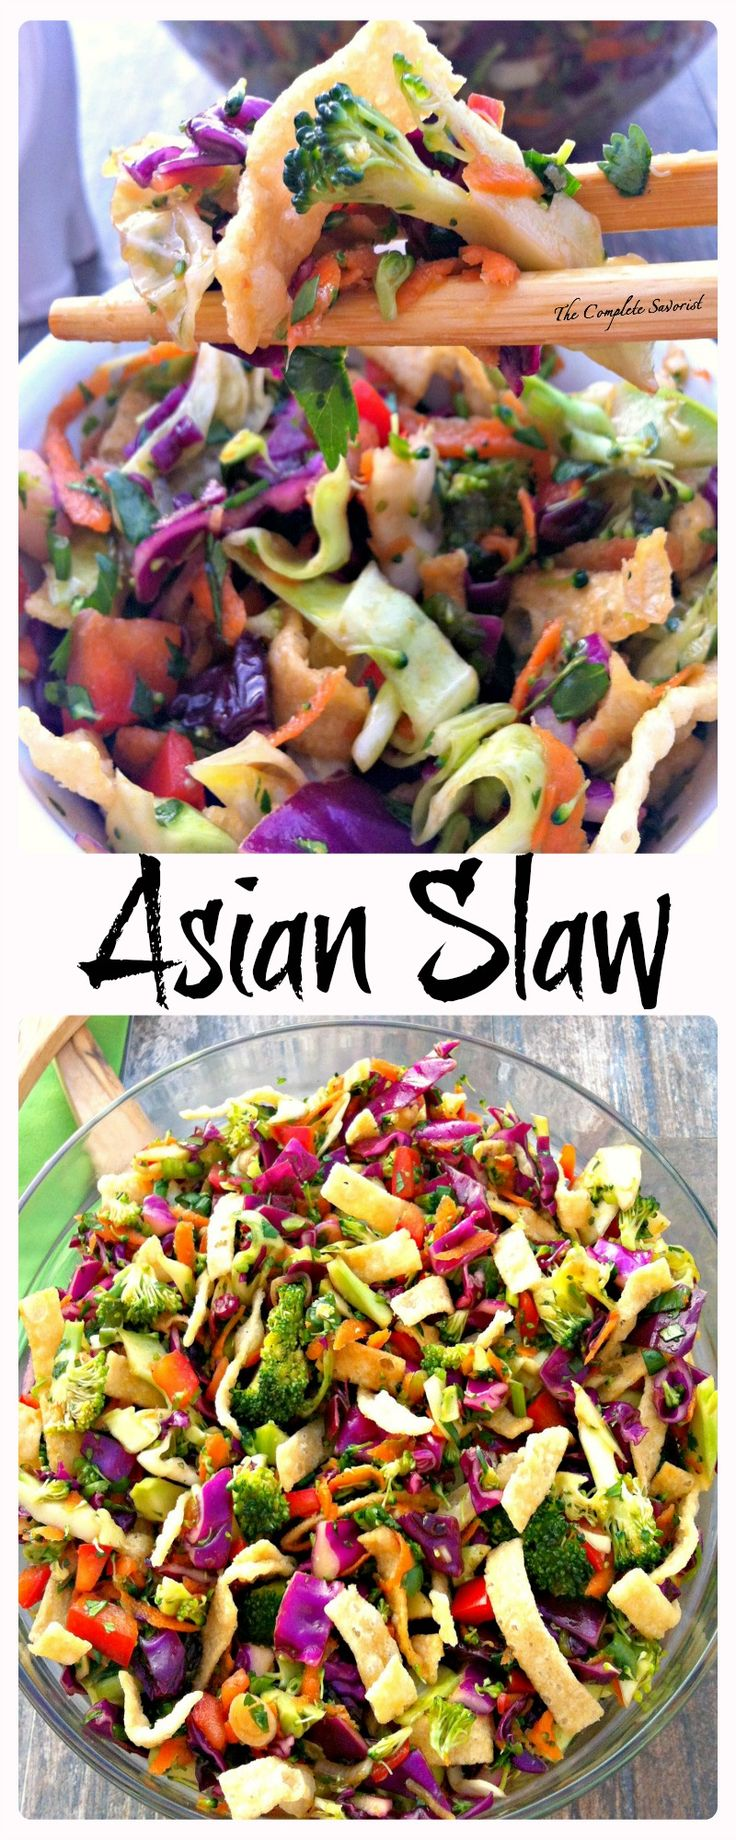 Asian Slaw ~ The Complete Savorist Crunchy Veggies, Tangy Dressing, and Crispy Wonton Strips